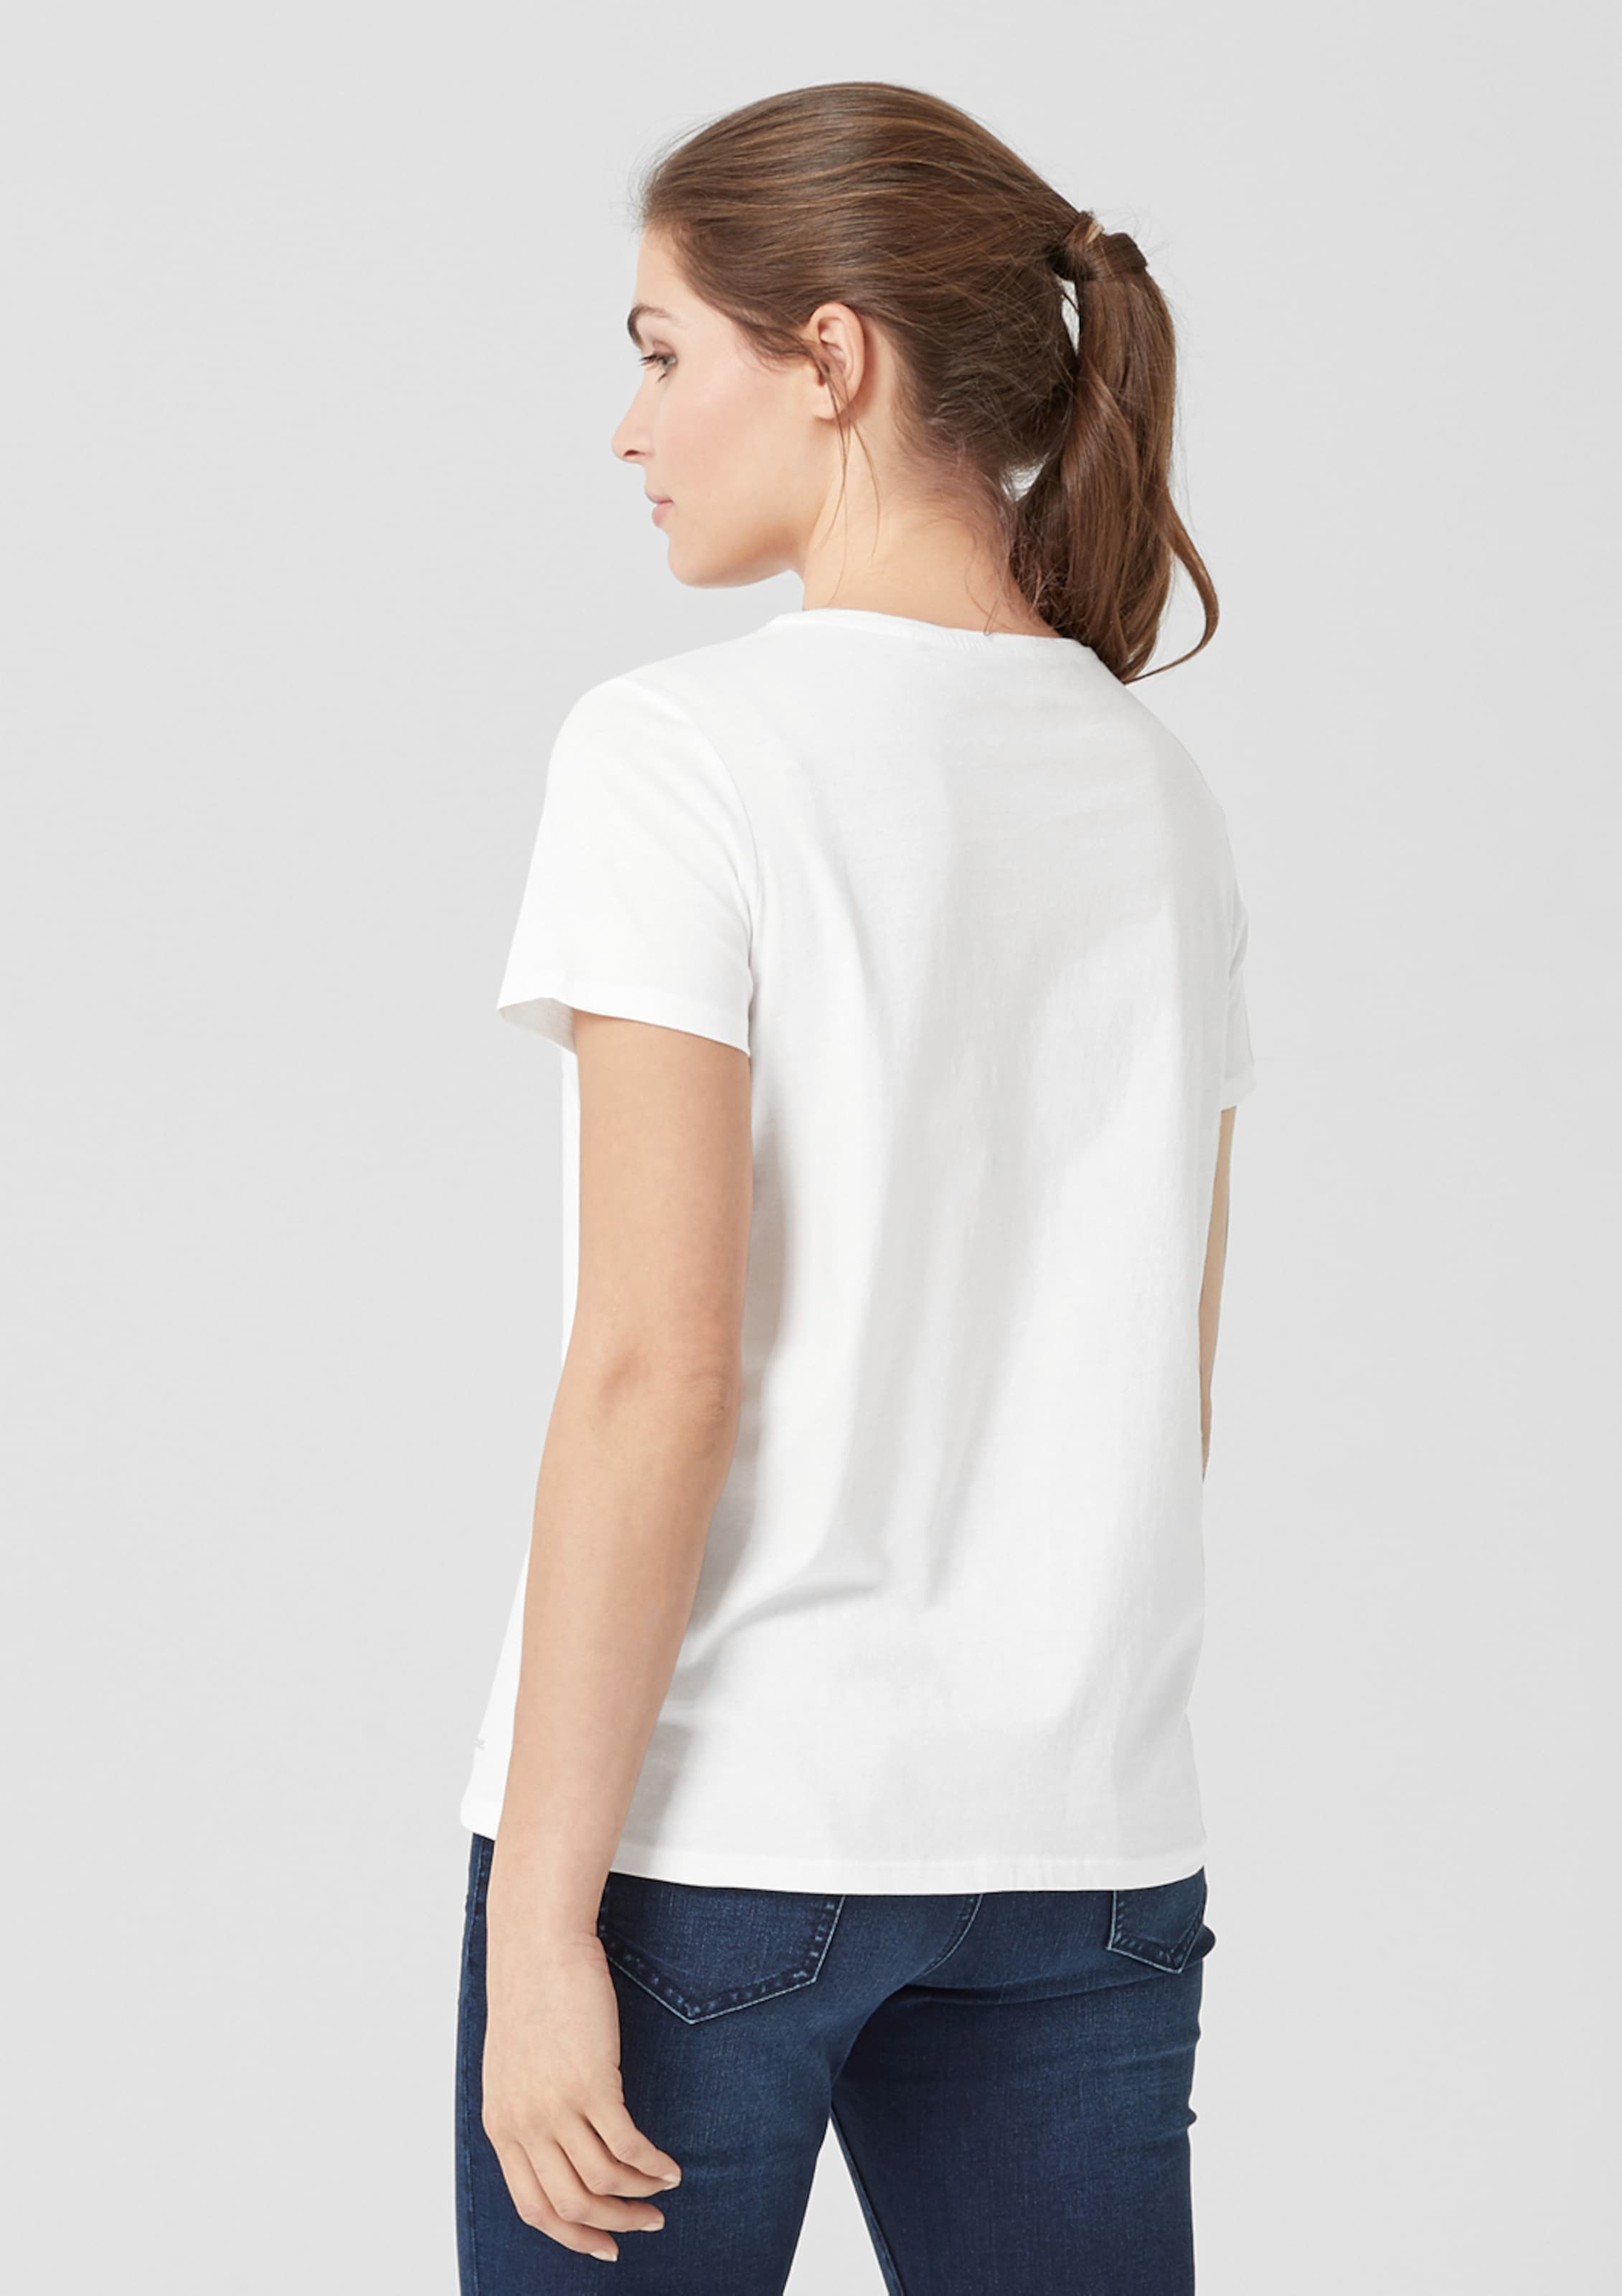 Triangle T En Blanc shirt Triangle T qSUGzVMp